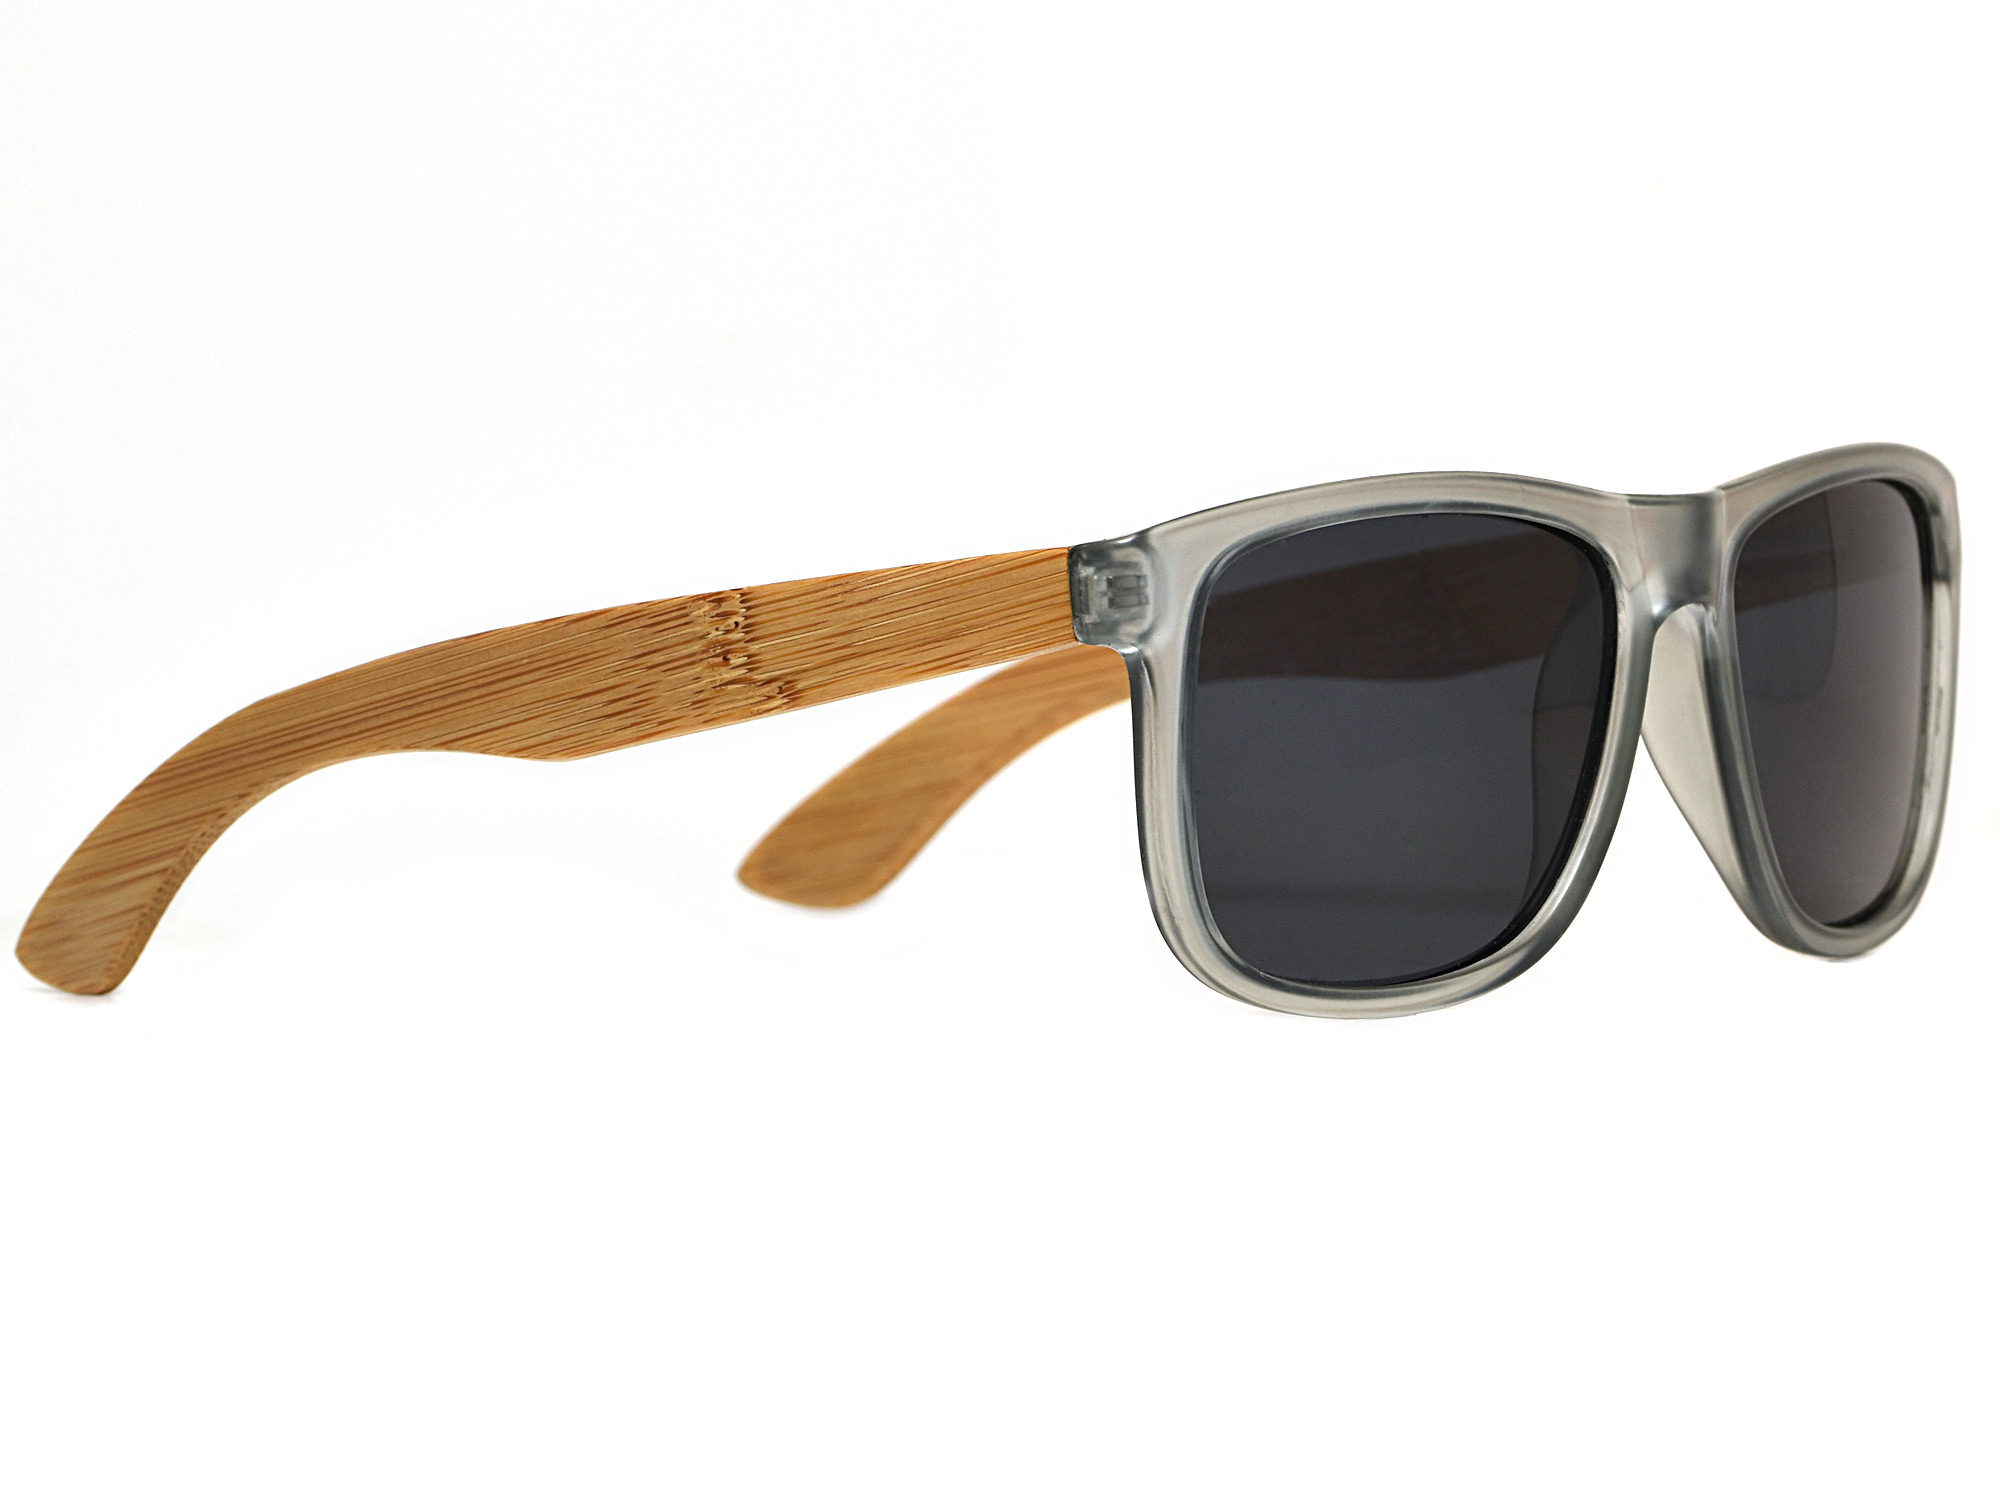 Square bamboo wood sunglasses with black polarized lenses right